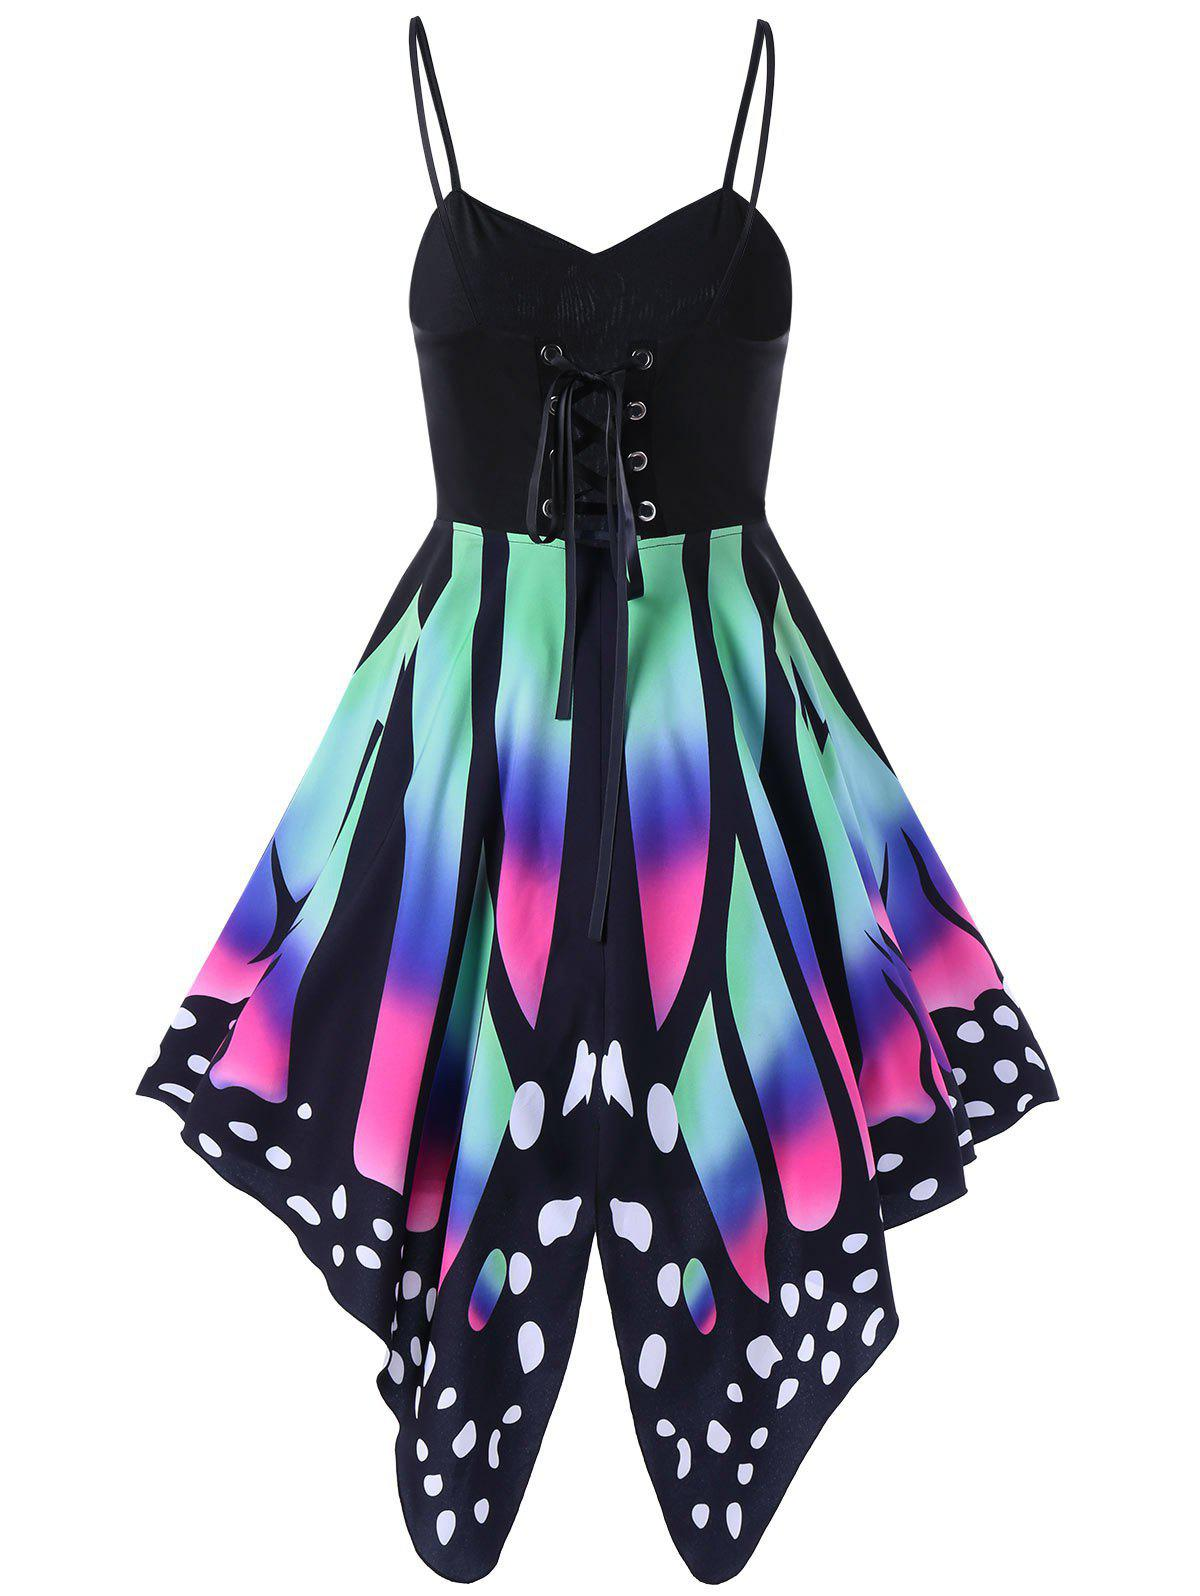 Discount Women's Butterfly Shape Print   Summer Strapy Lace Up Back Skater Dress  A-Line dress